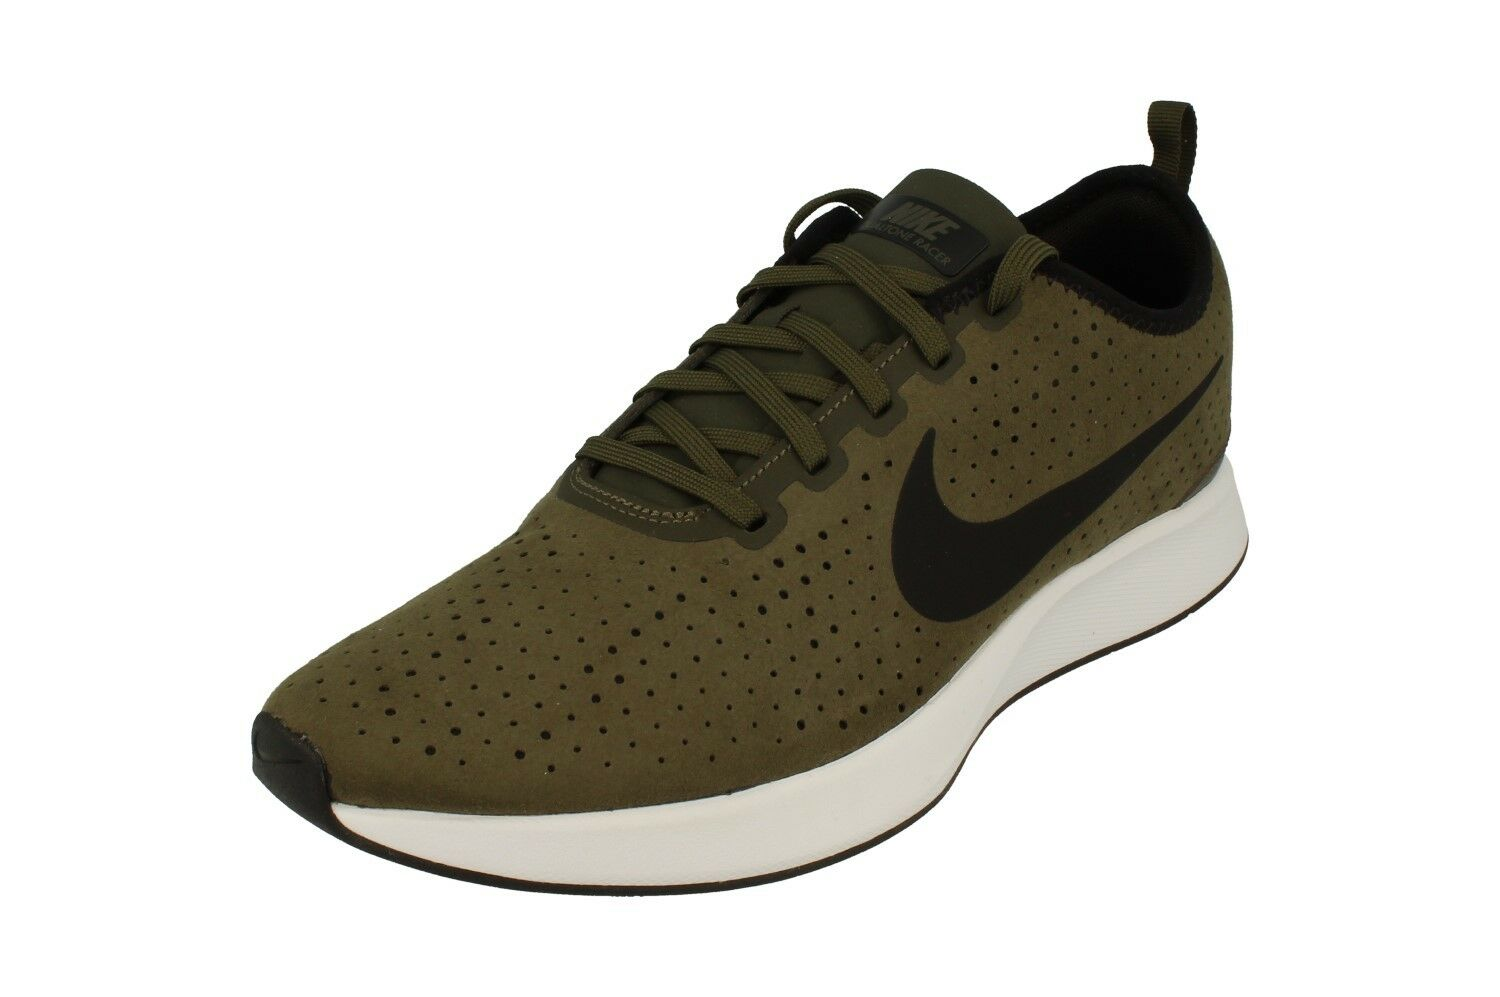 Nike Dualtone Racer PRM Mens Running Trainers 924448 Sneakers Shoes 300